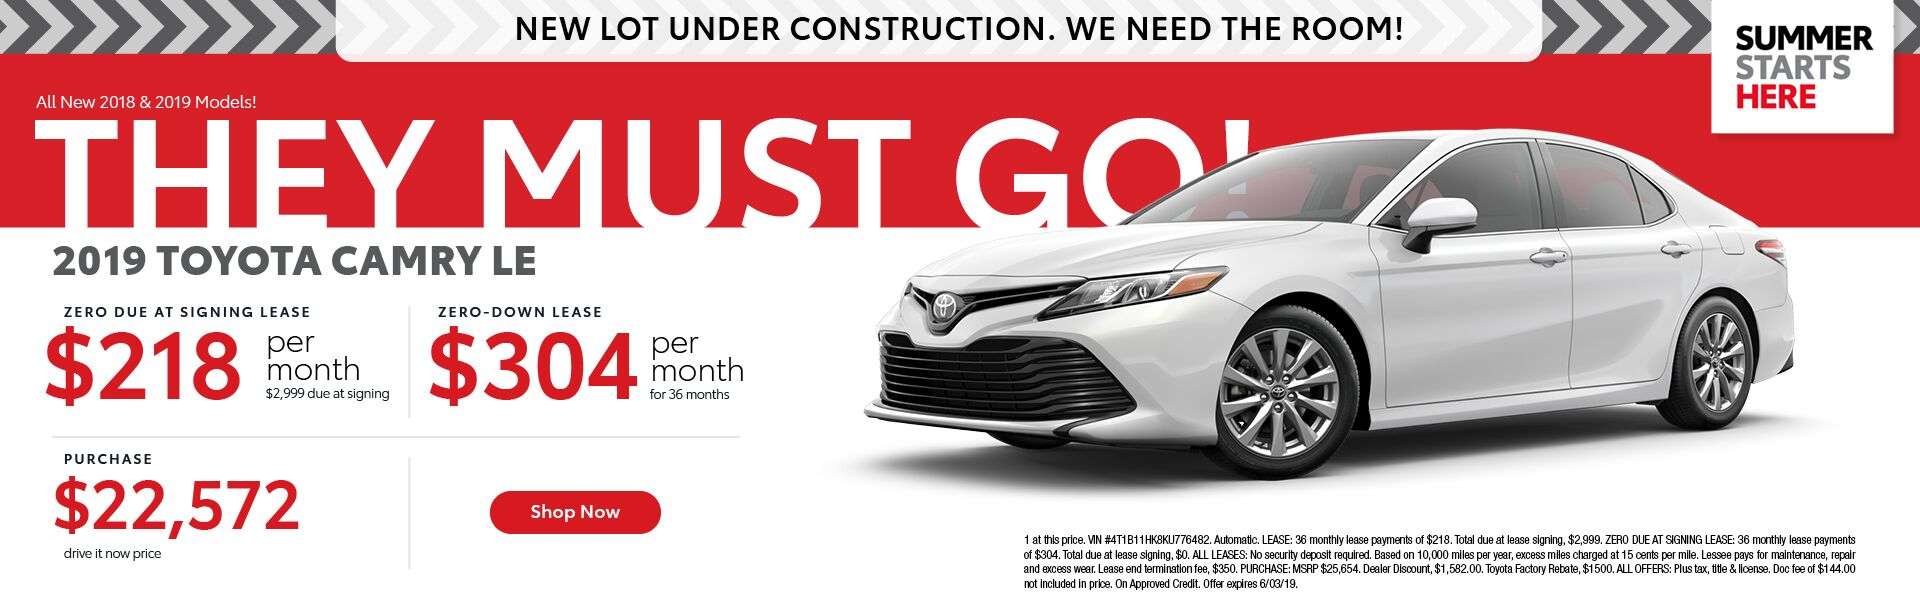 2019 Toyota Camry LE - 36 month lease $218 per month $2,999 due at signing - $0 down lease $304 per month 36 month lease - Purchase price $22,572